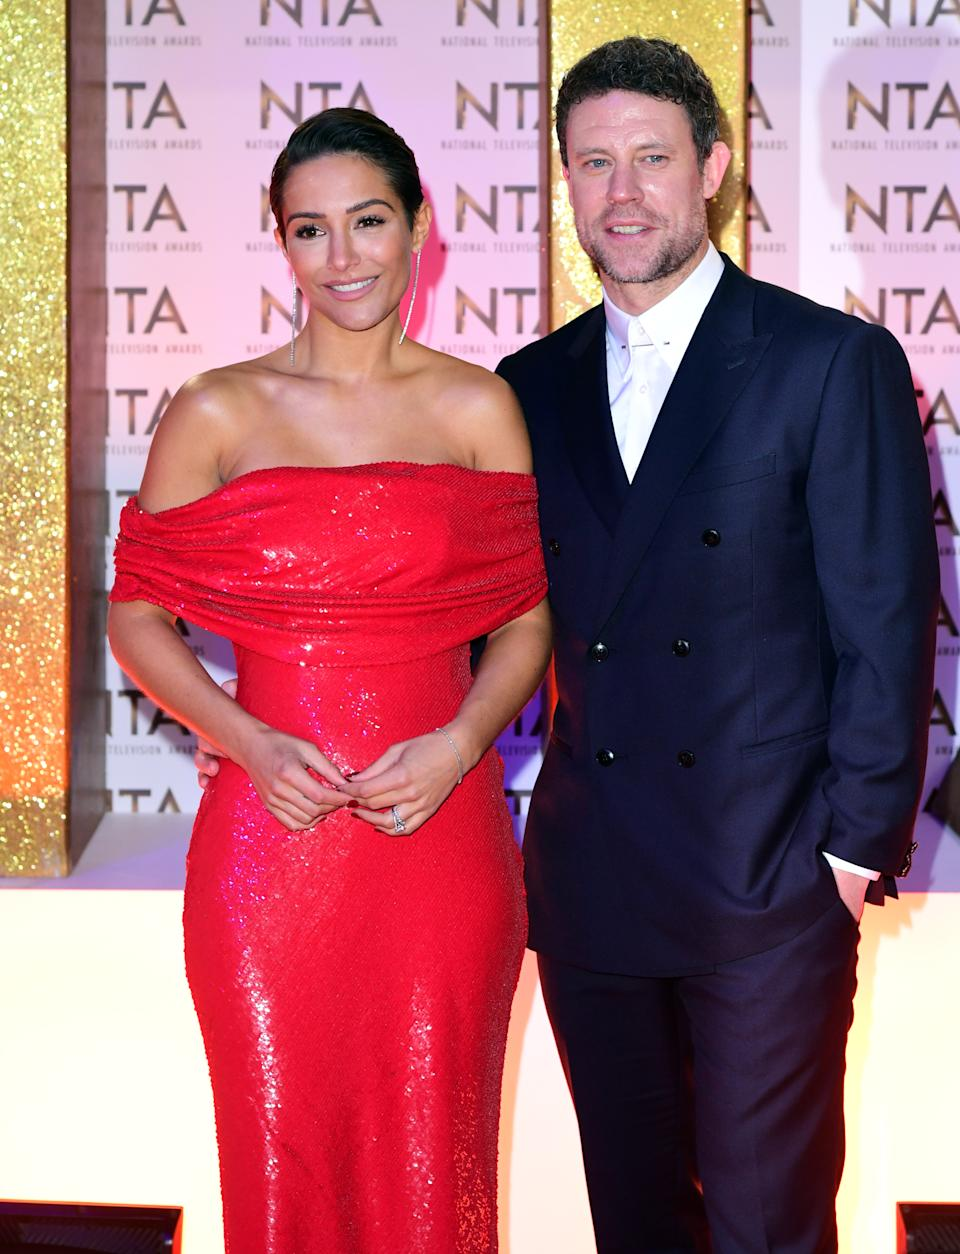 Frankie Bridge and Wayne Bridge during the National Television Awards at London's O2 Arena. (Photo by Ian West/PA Images via Getty Images)